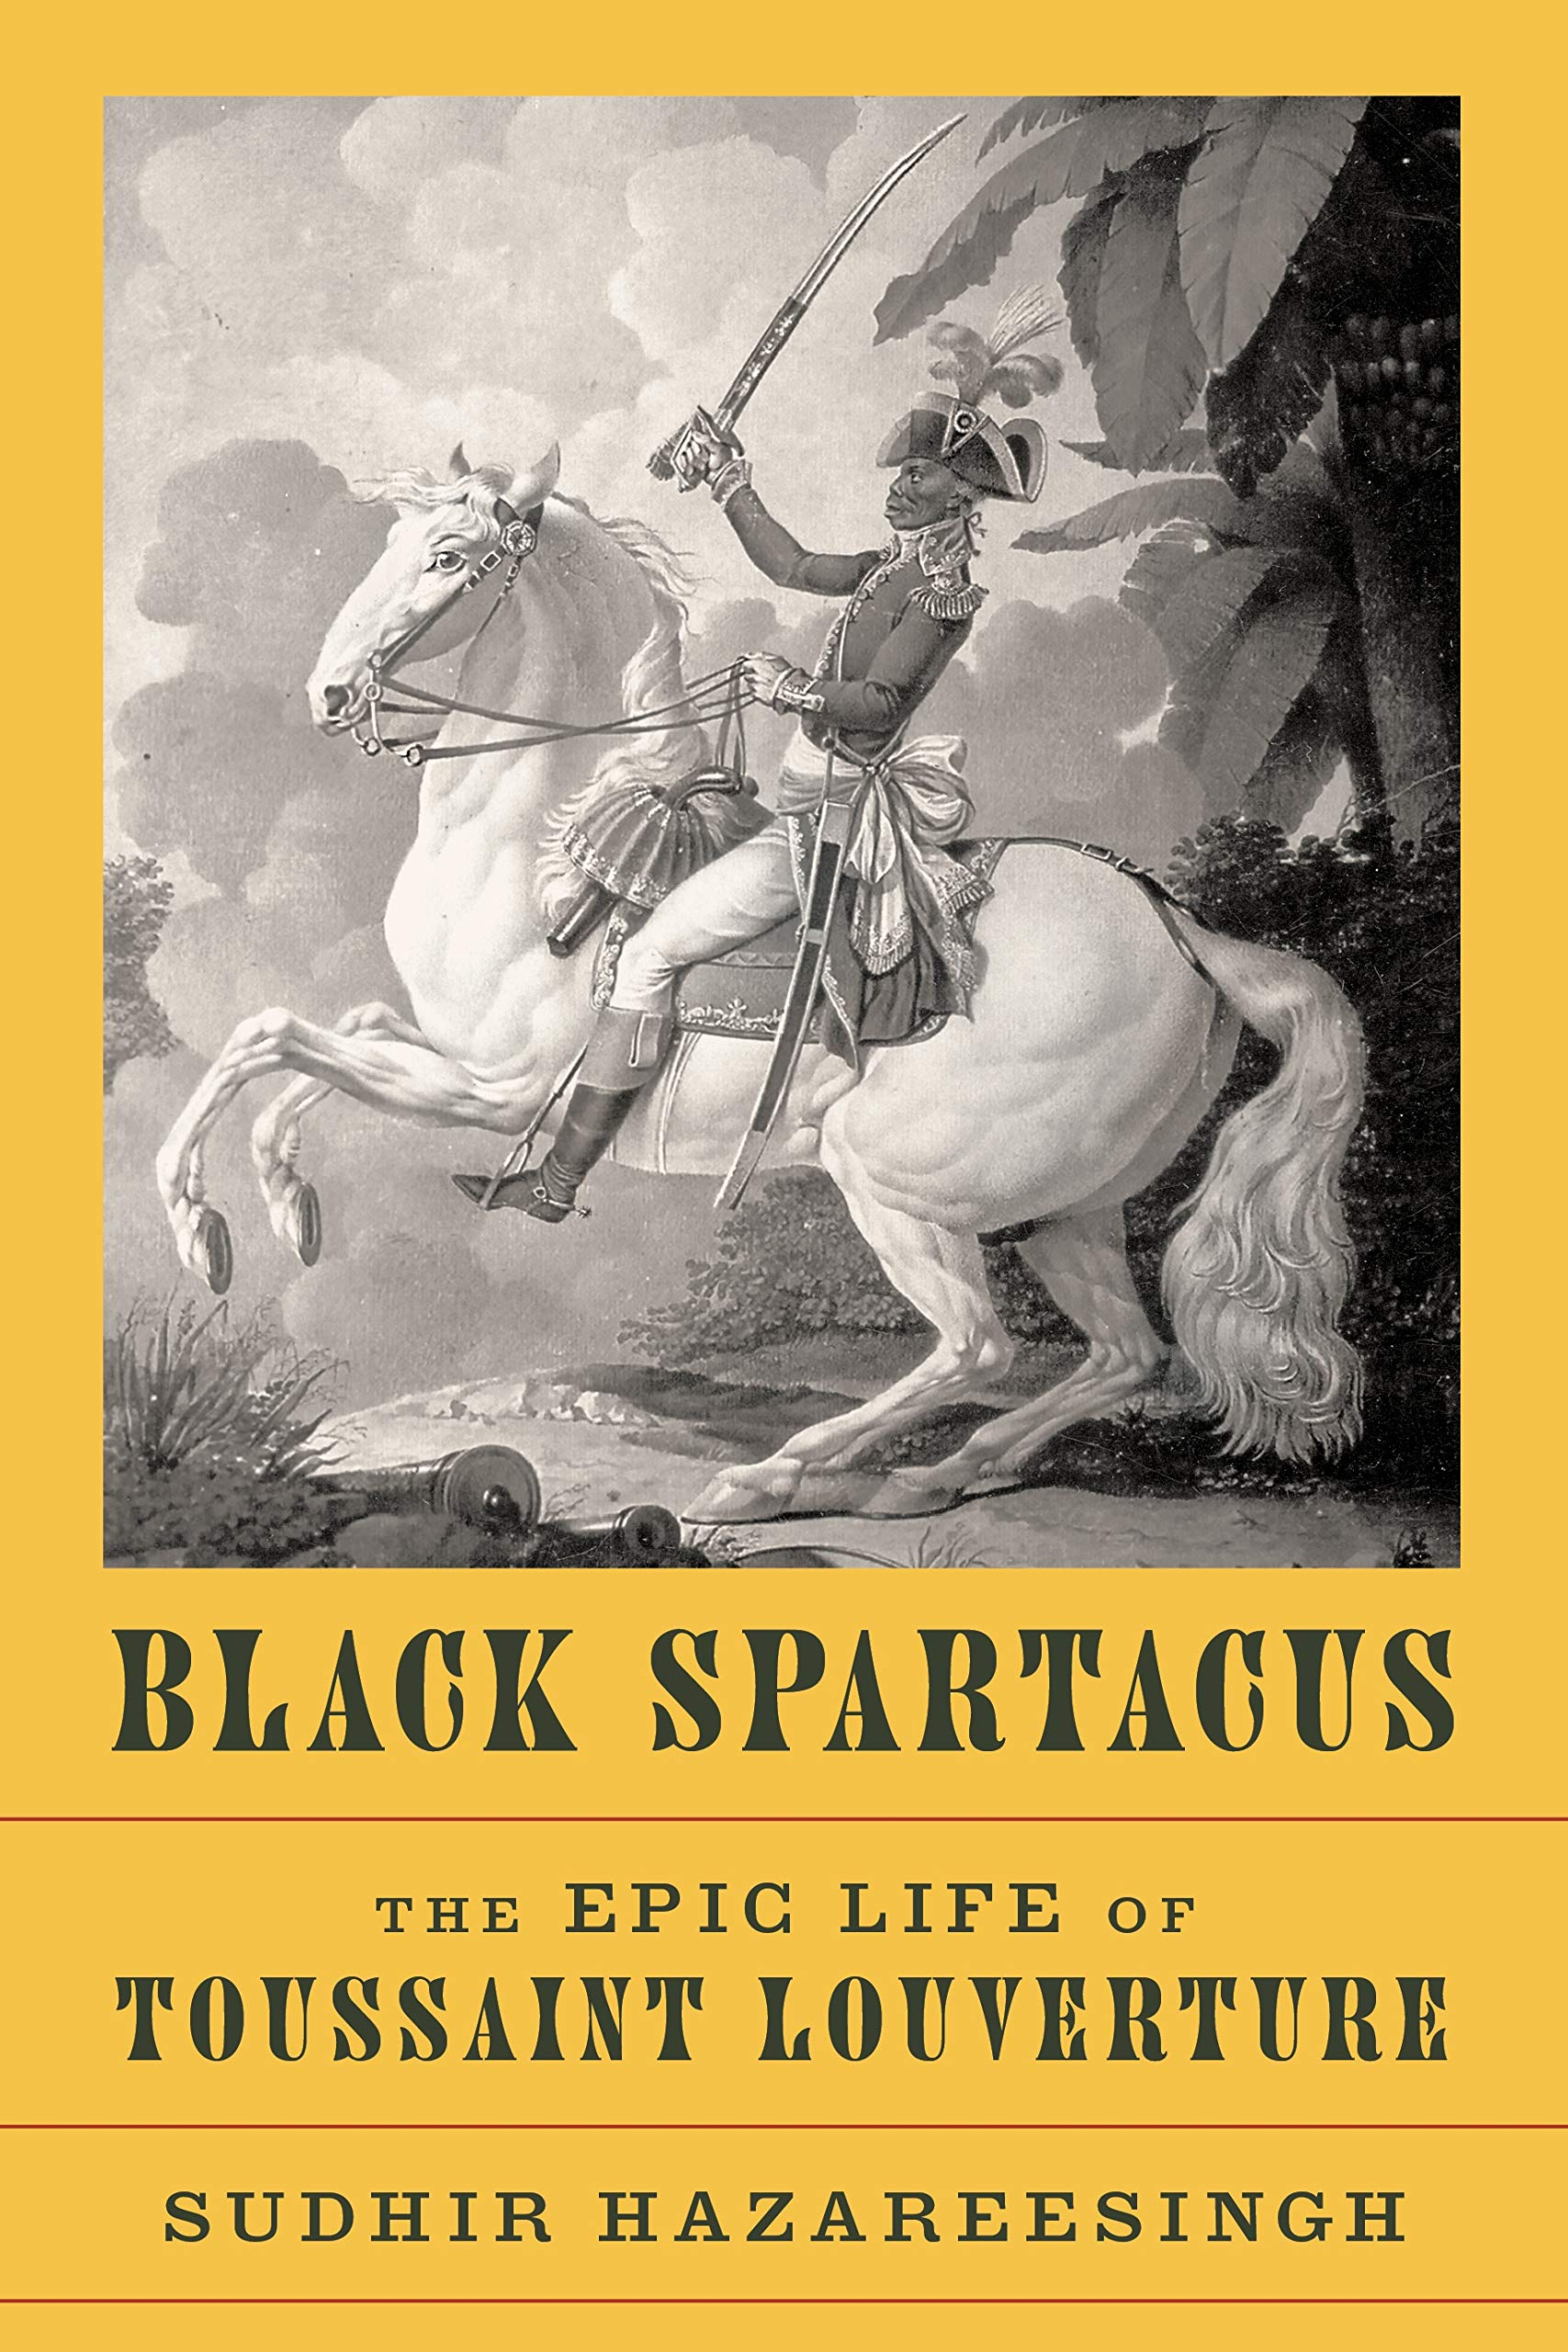 Amazon.com: Black Spartacus: The Epic Life of Toussaint Louverture (9780374112660): Hazareesingh, Sudhir: Books